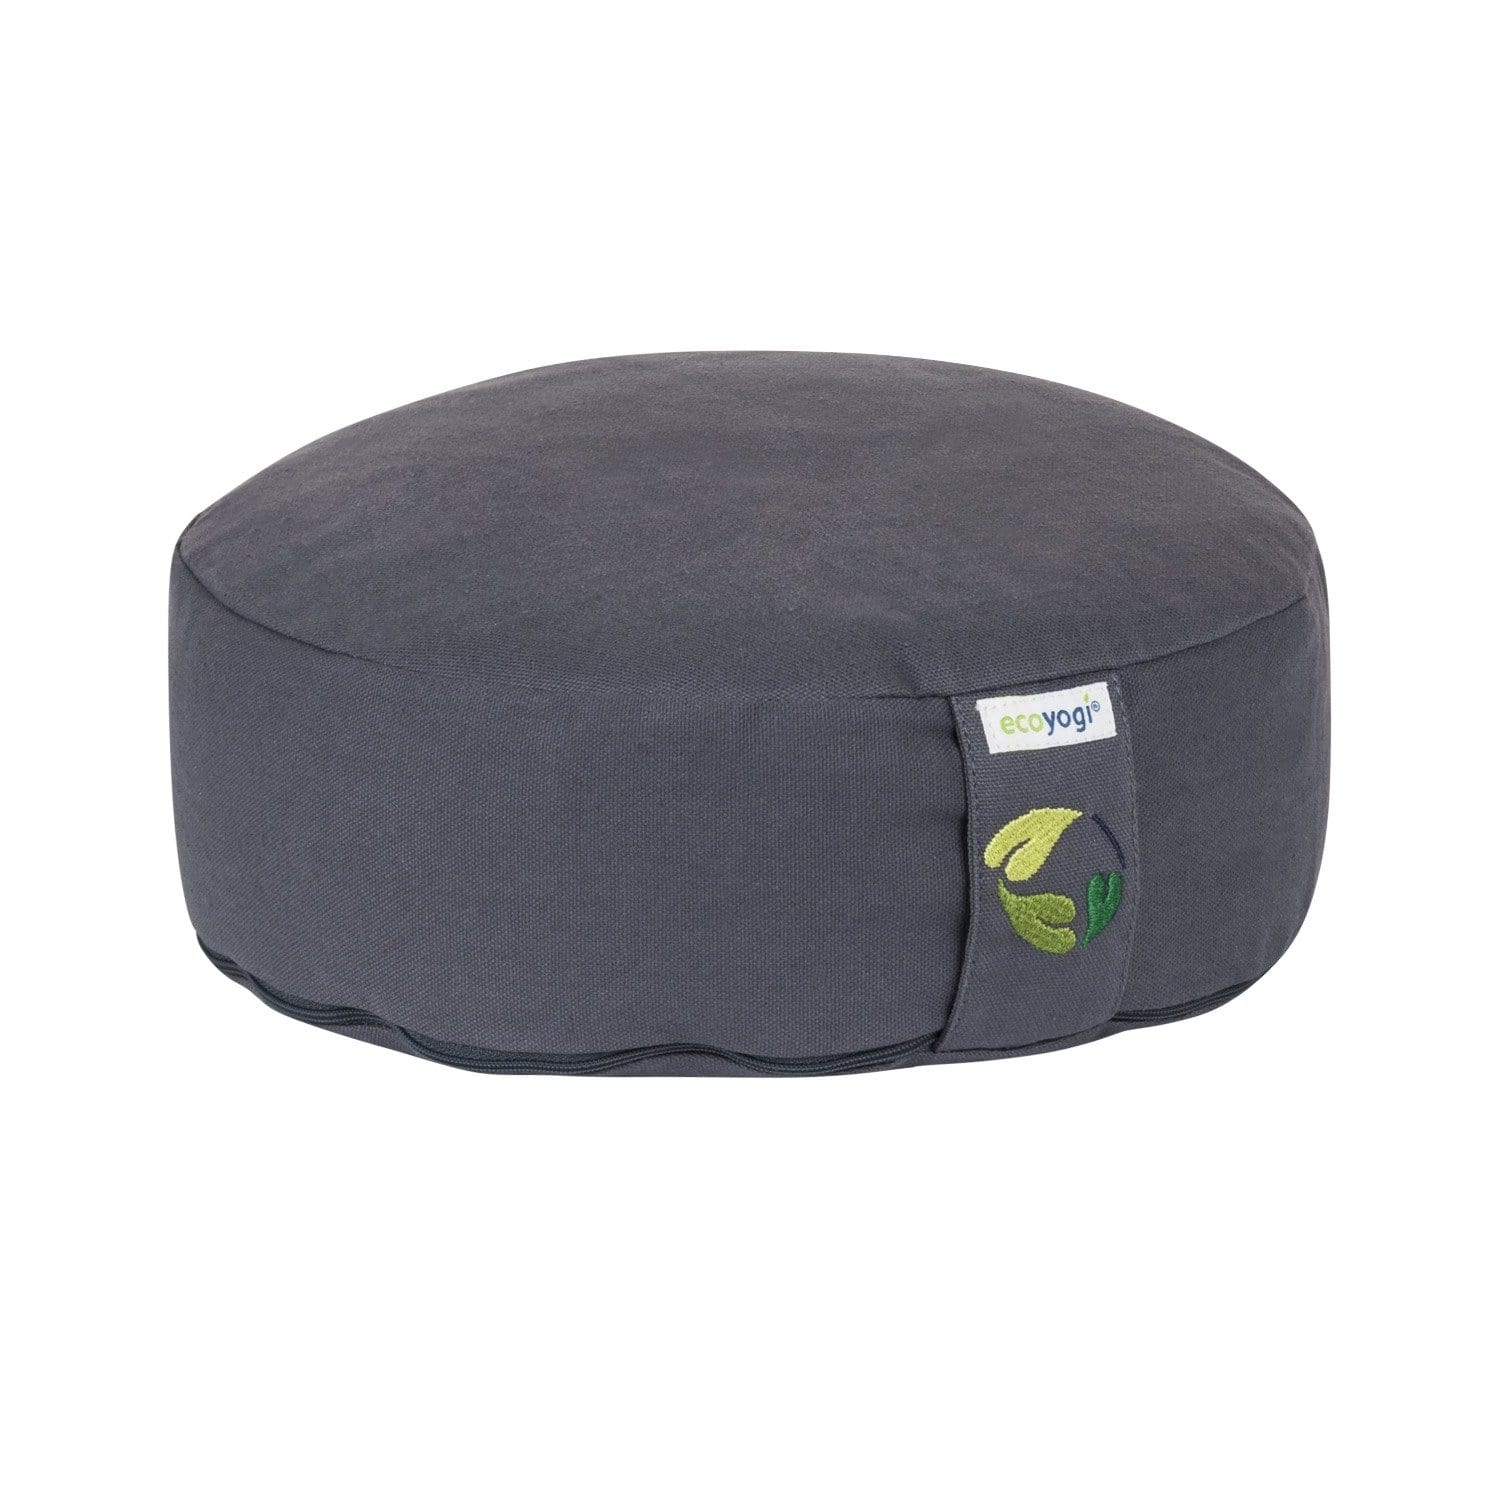 Sustainable meditation cushion low made of organic cotton (GOTS certified) and filling in natural purified buckwheat chaff grey